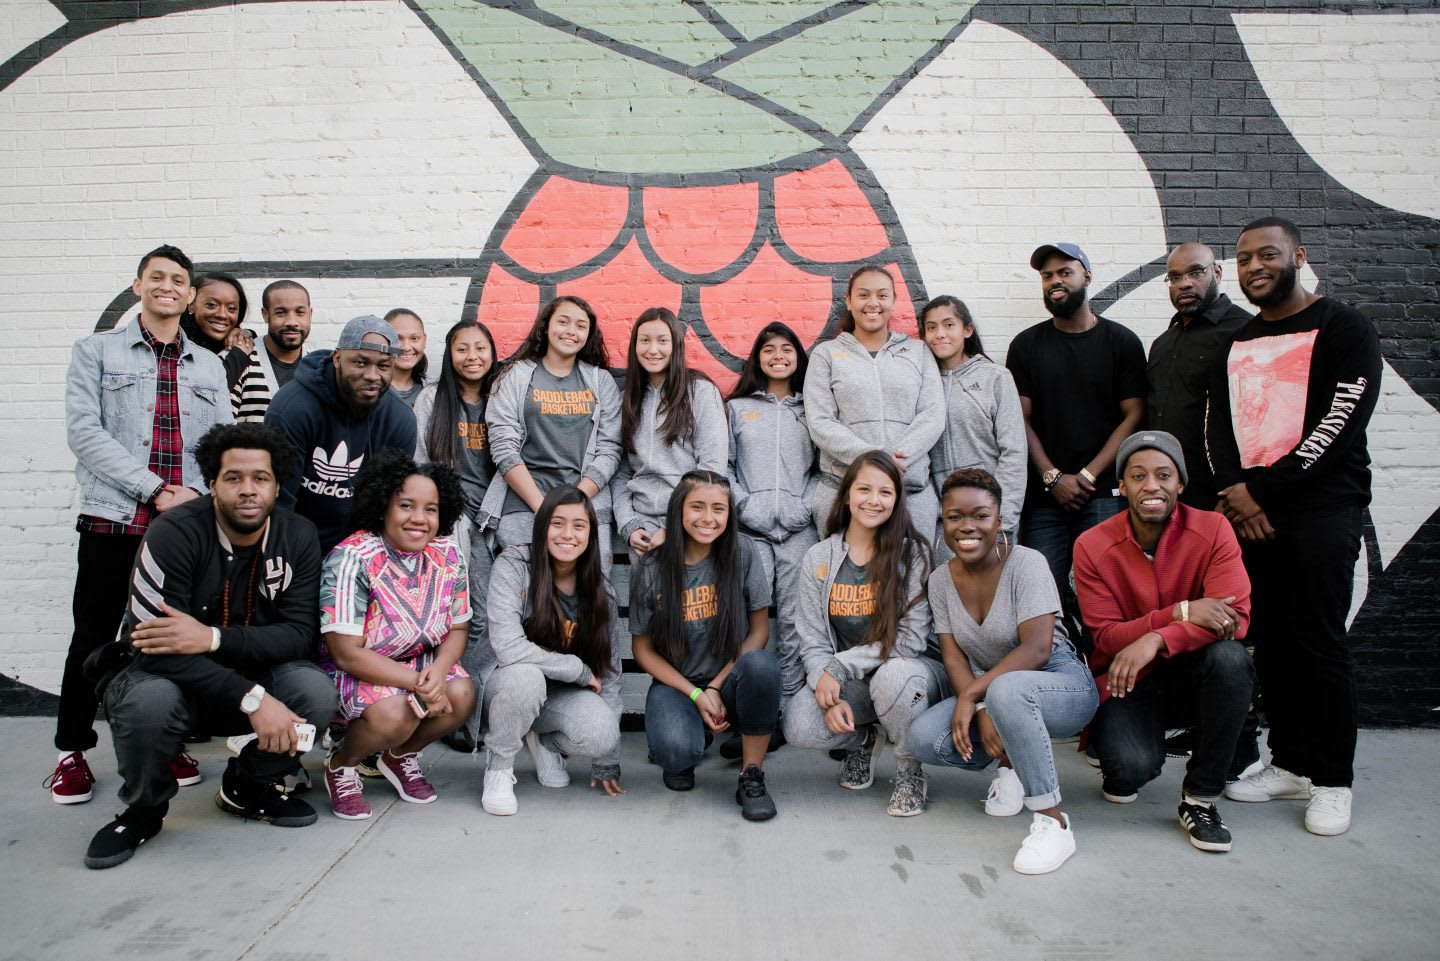 A group of youth and mentors pose for a group photo in front of a wall with a mural on it. team, teamwork, celebration, pride